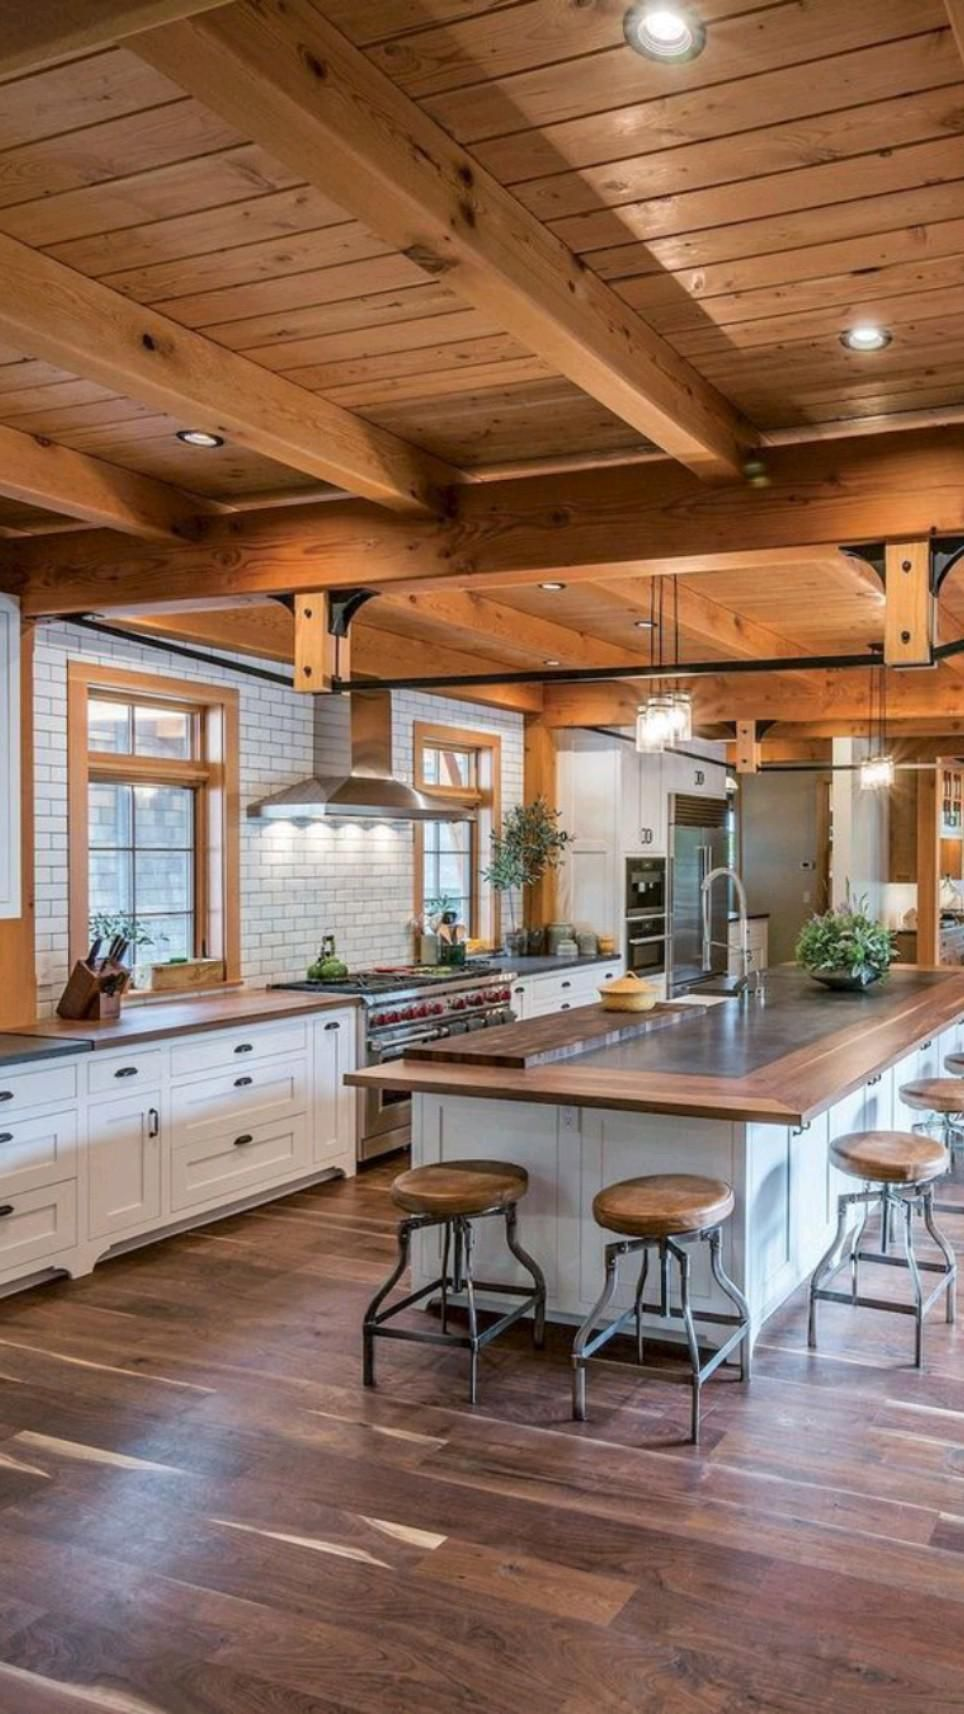 Kitchen island with built-in seating inspiration